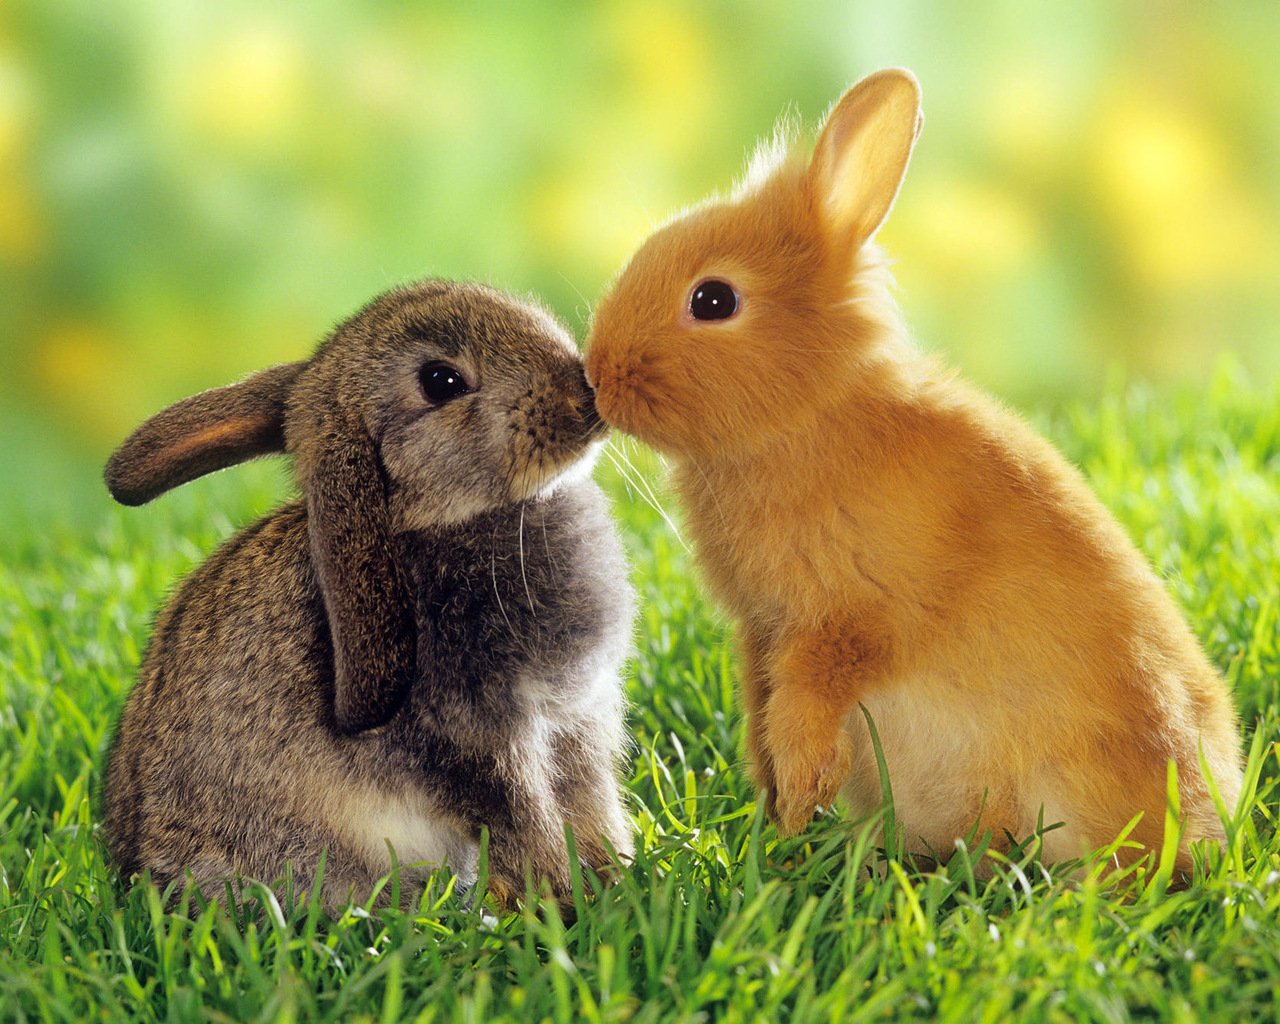 22773 download wallpaper Animals, Rabbits screensavers and pictures for free